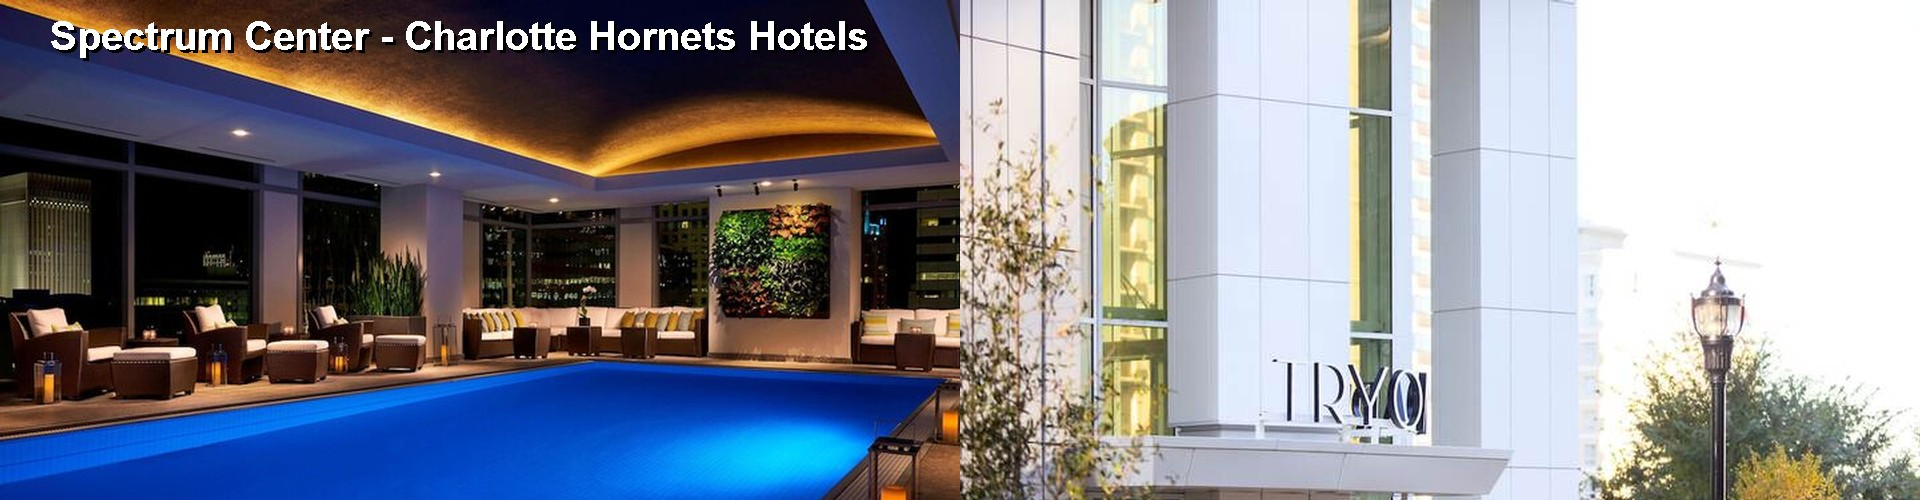 5 Best Hotels near Spectrum Center - Charlotte Hornets